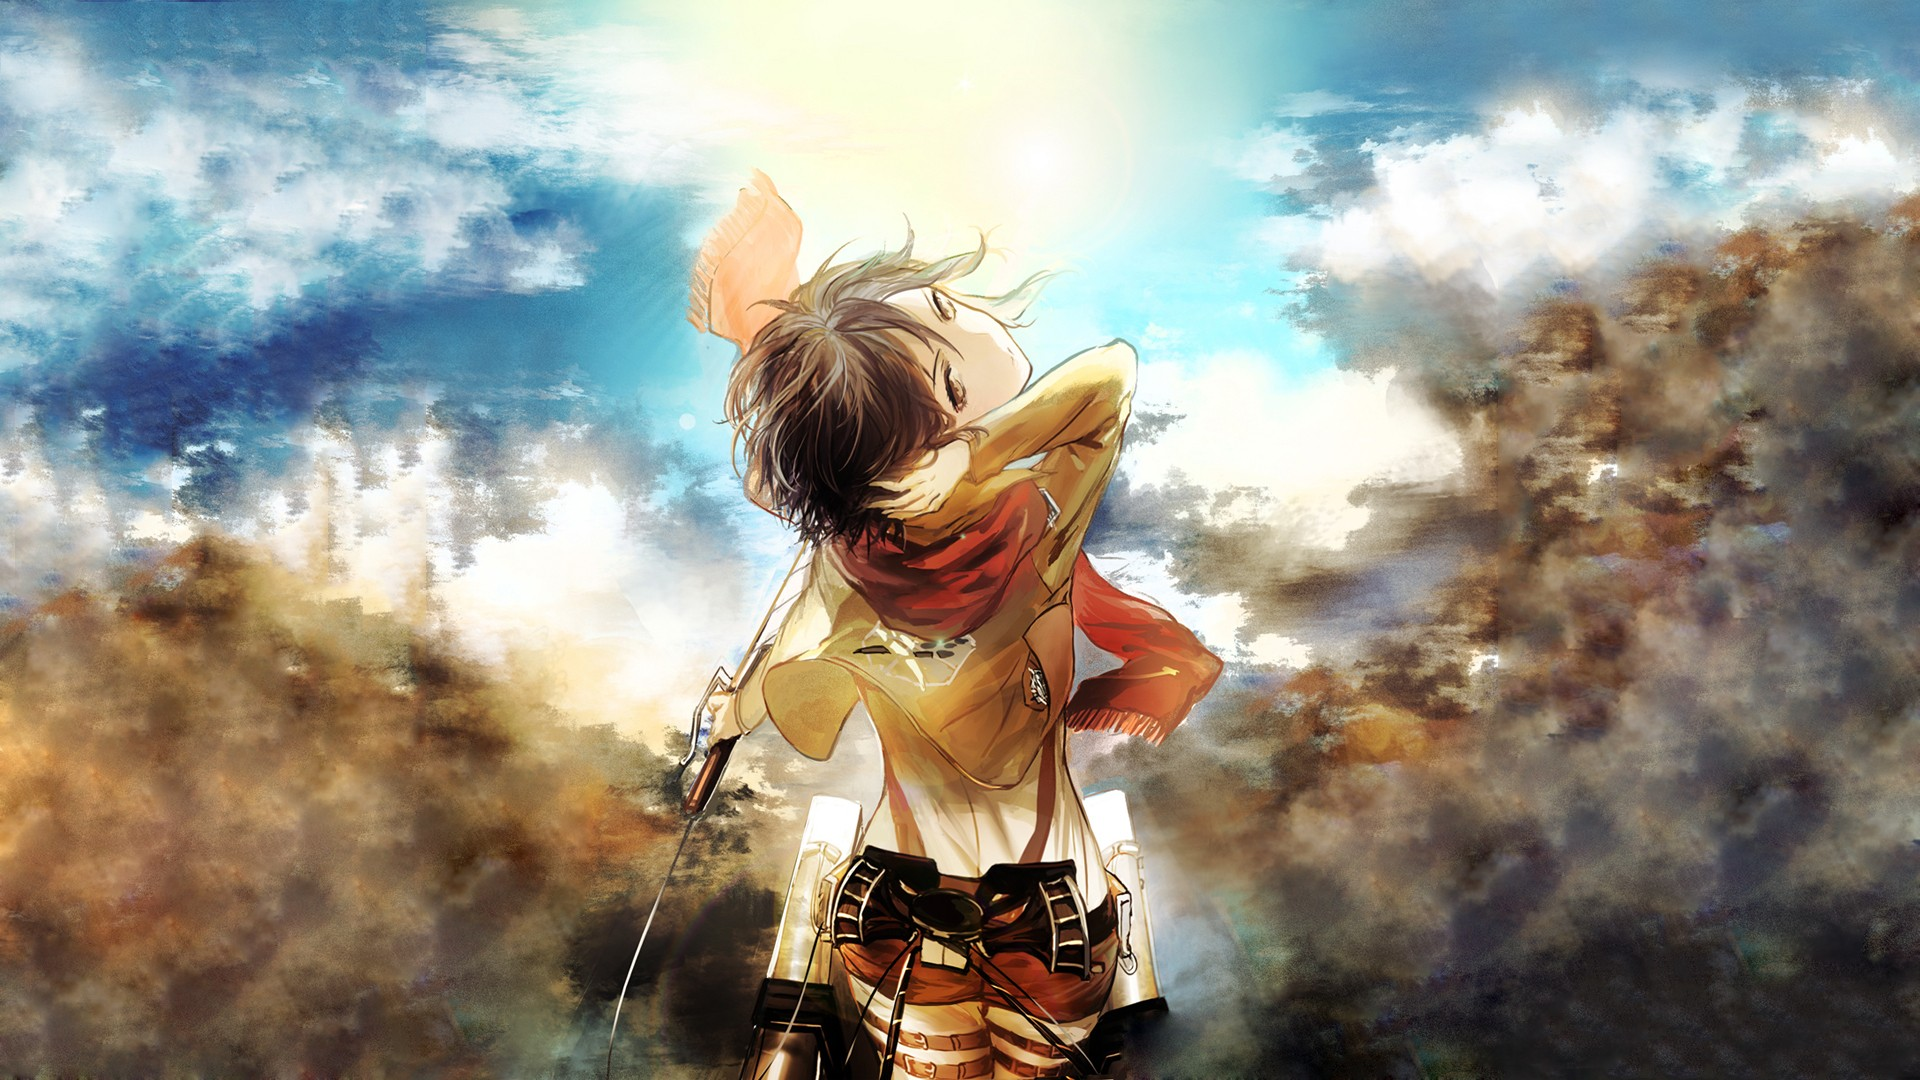 Kingdom Hearts Iphone Wallpaper Attack On Titan Wallpapers High Quality Download Free